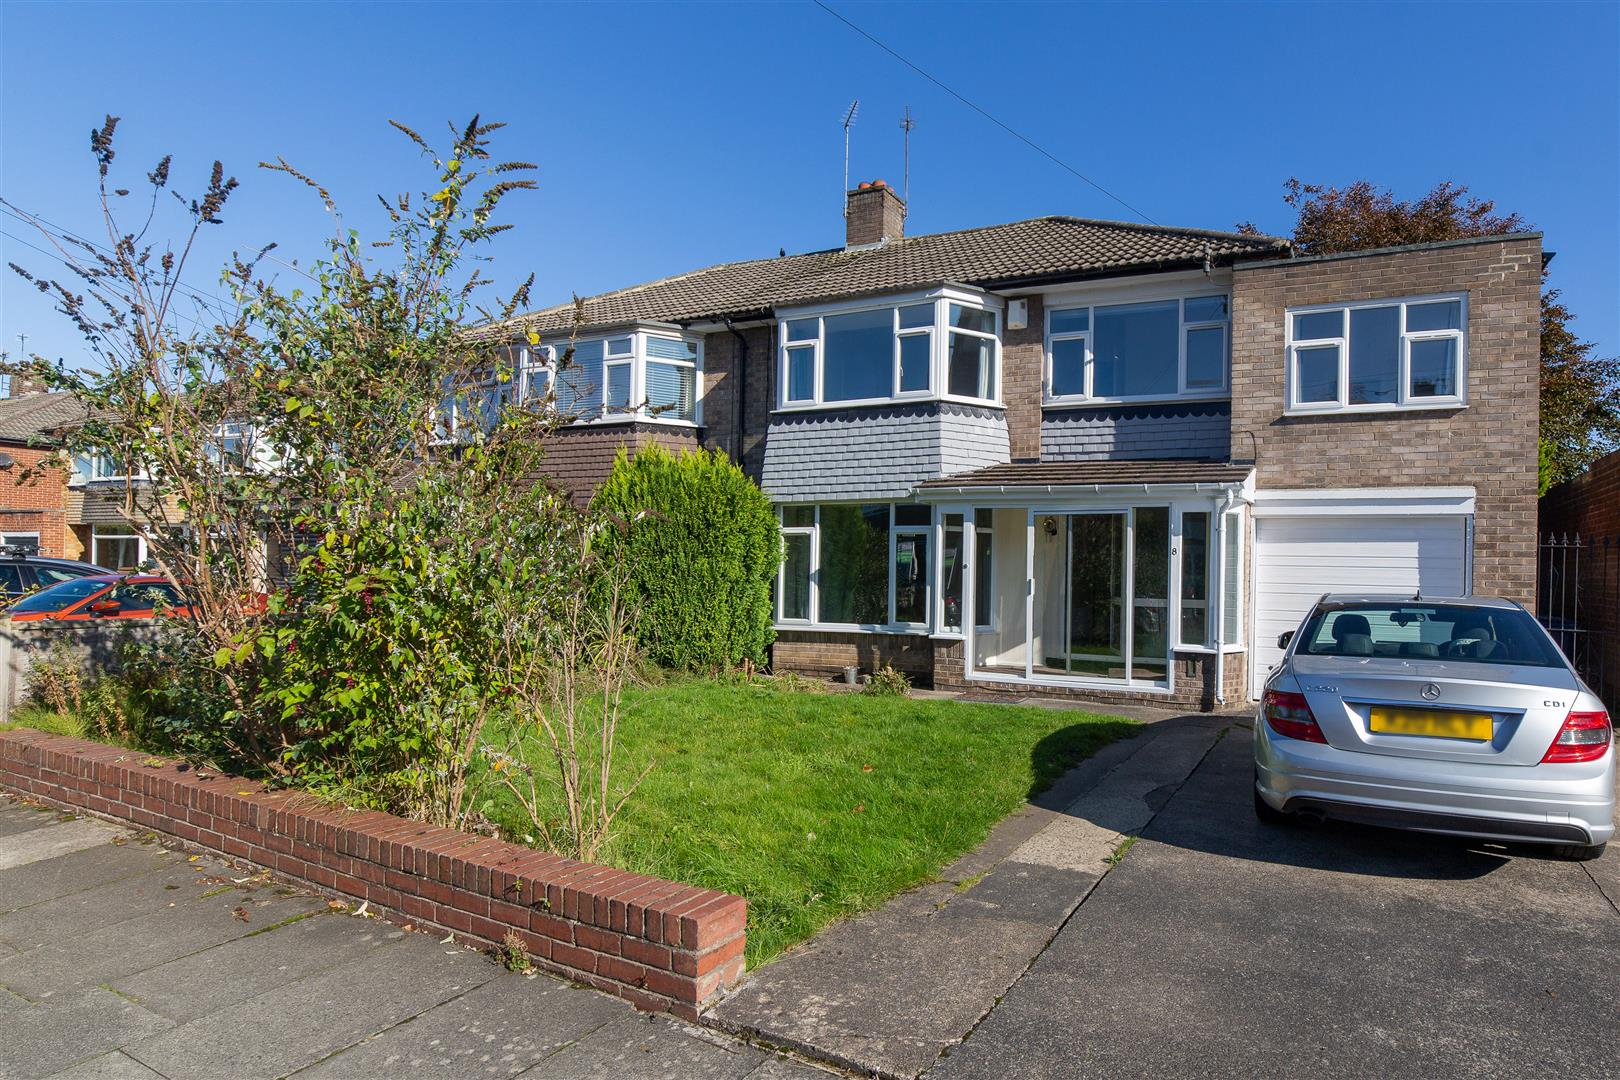 4 bed semi-detached house to rent in Newcastle Upon Tyne, NE3 5TB - Property Image 1